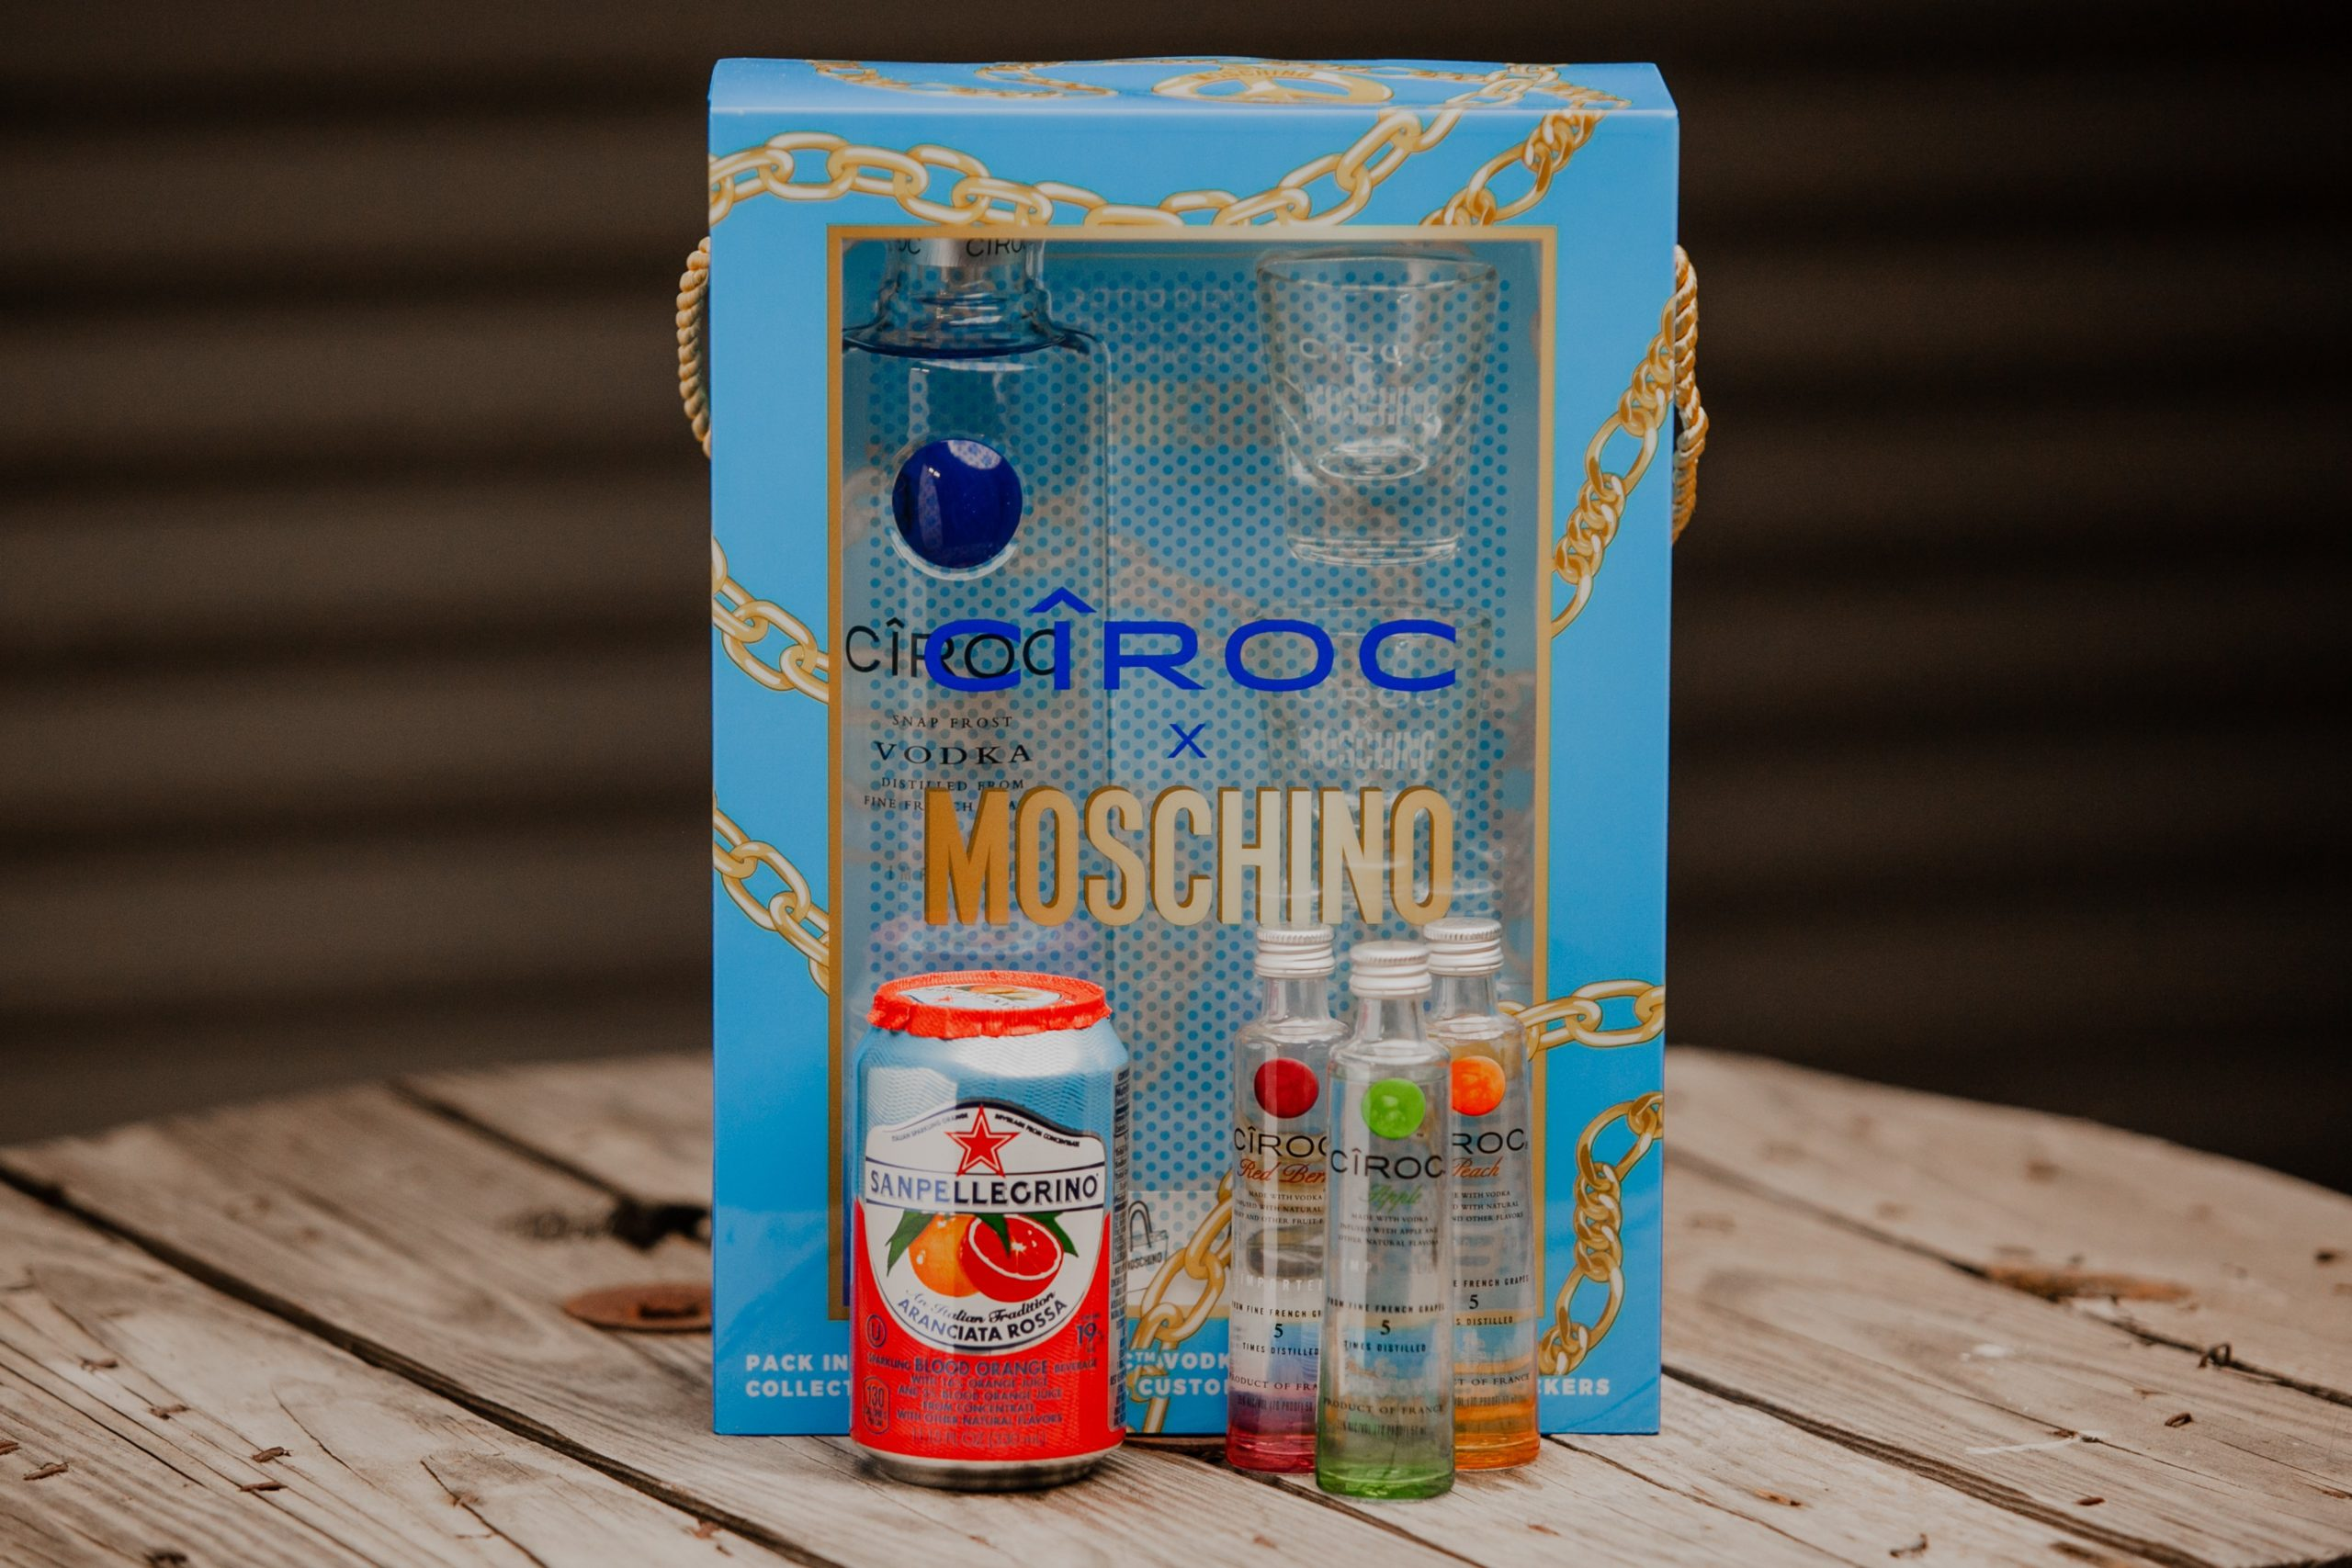 The Ciroc Moschino Gift Set